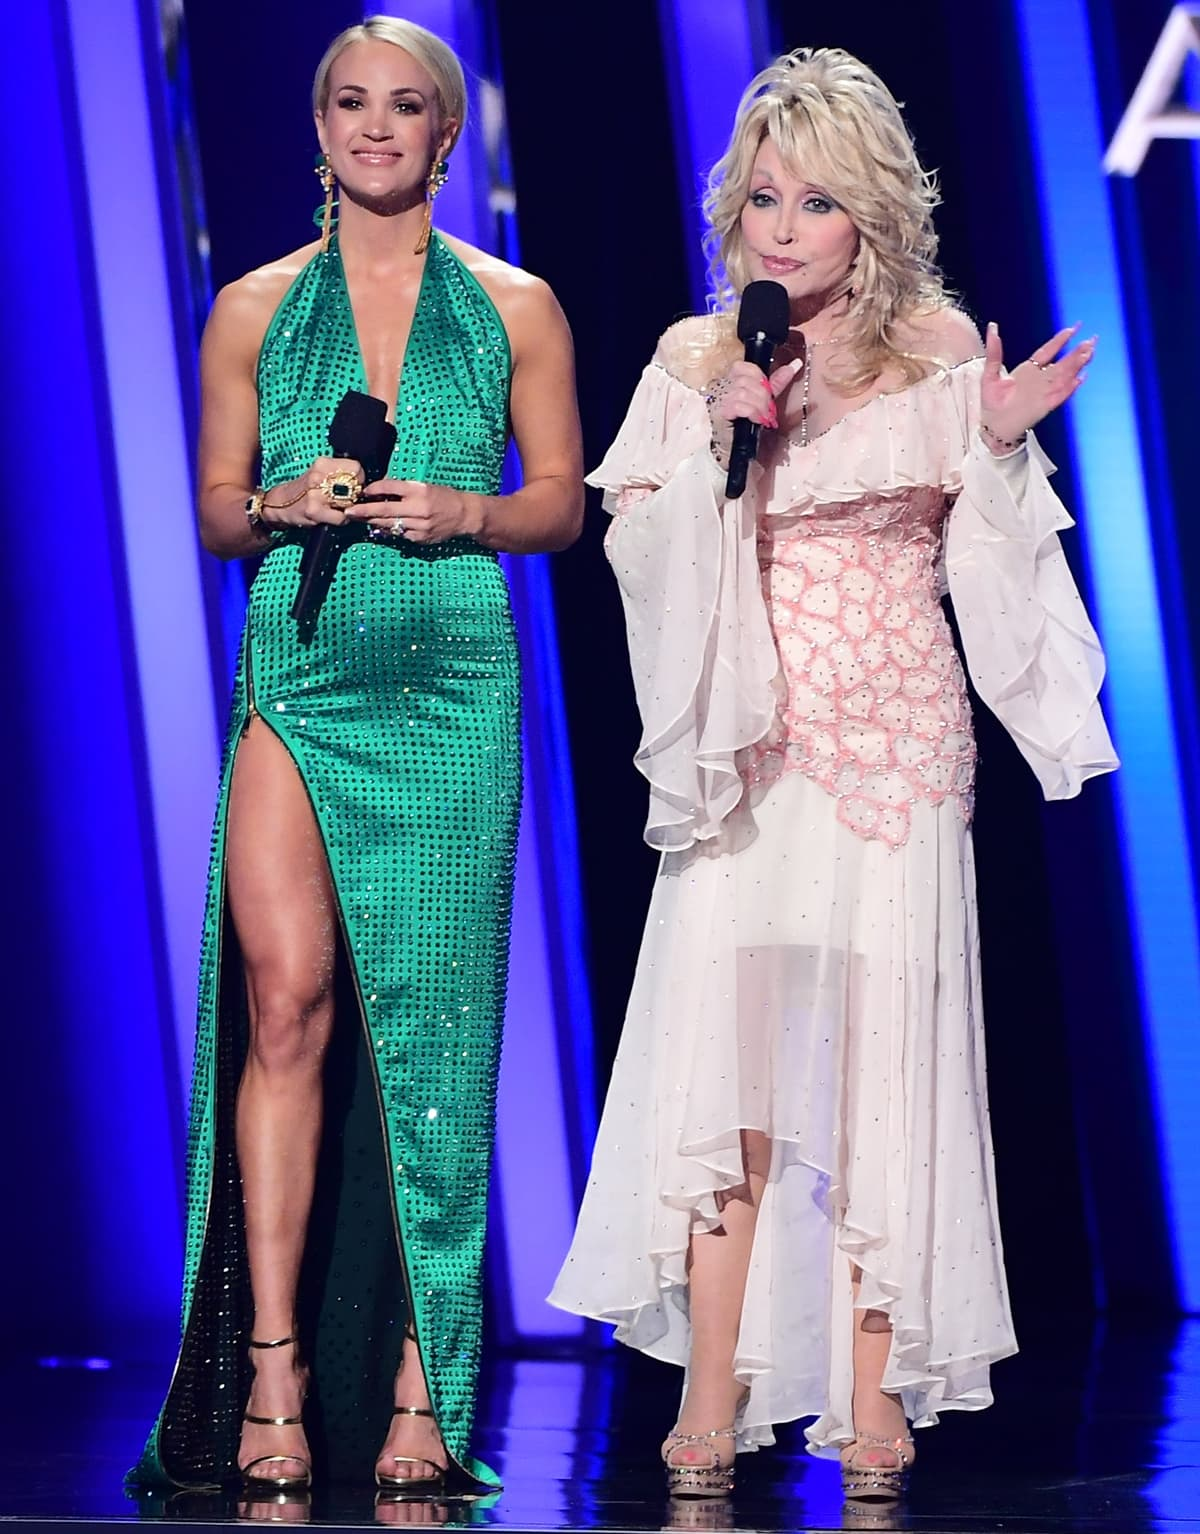 Carrie Underwood (L) and Dolly Parton speak onstage during the 53rd annual CMA Awards